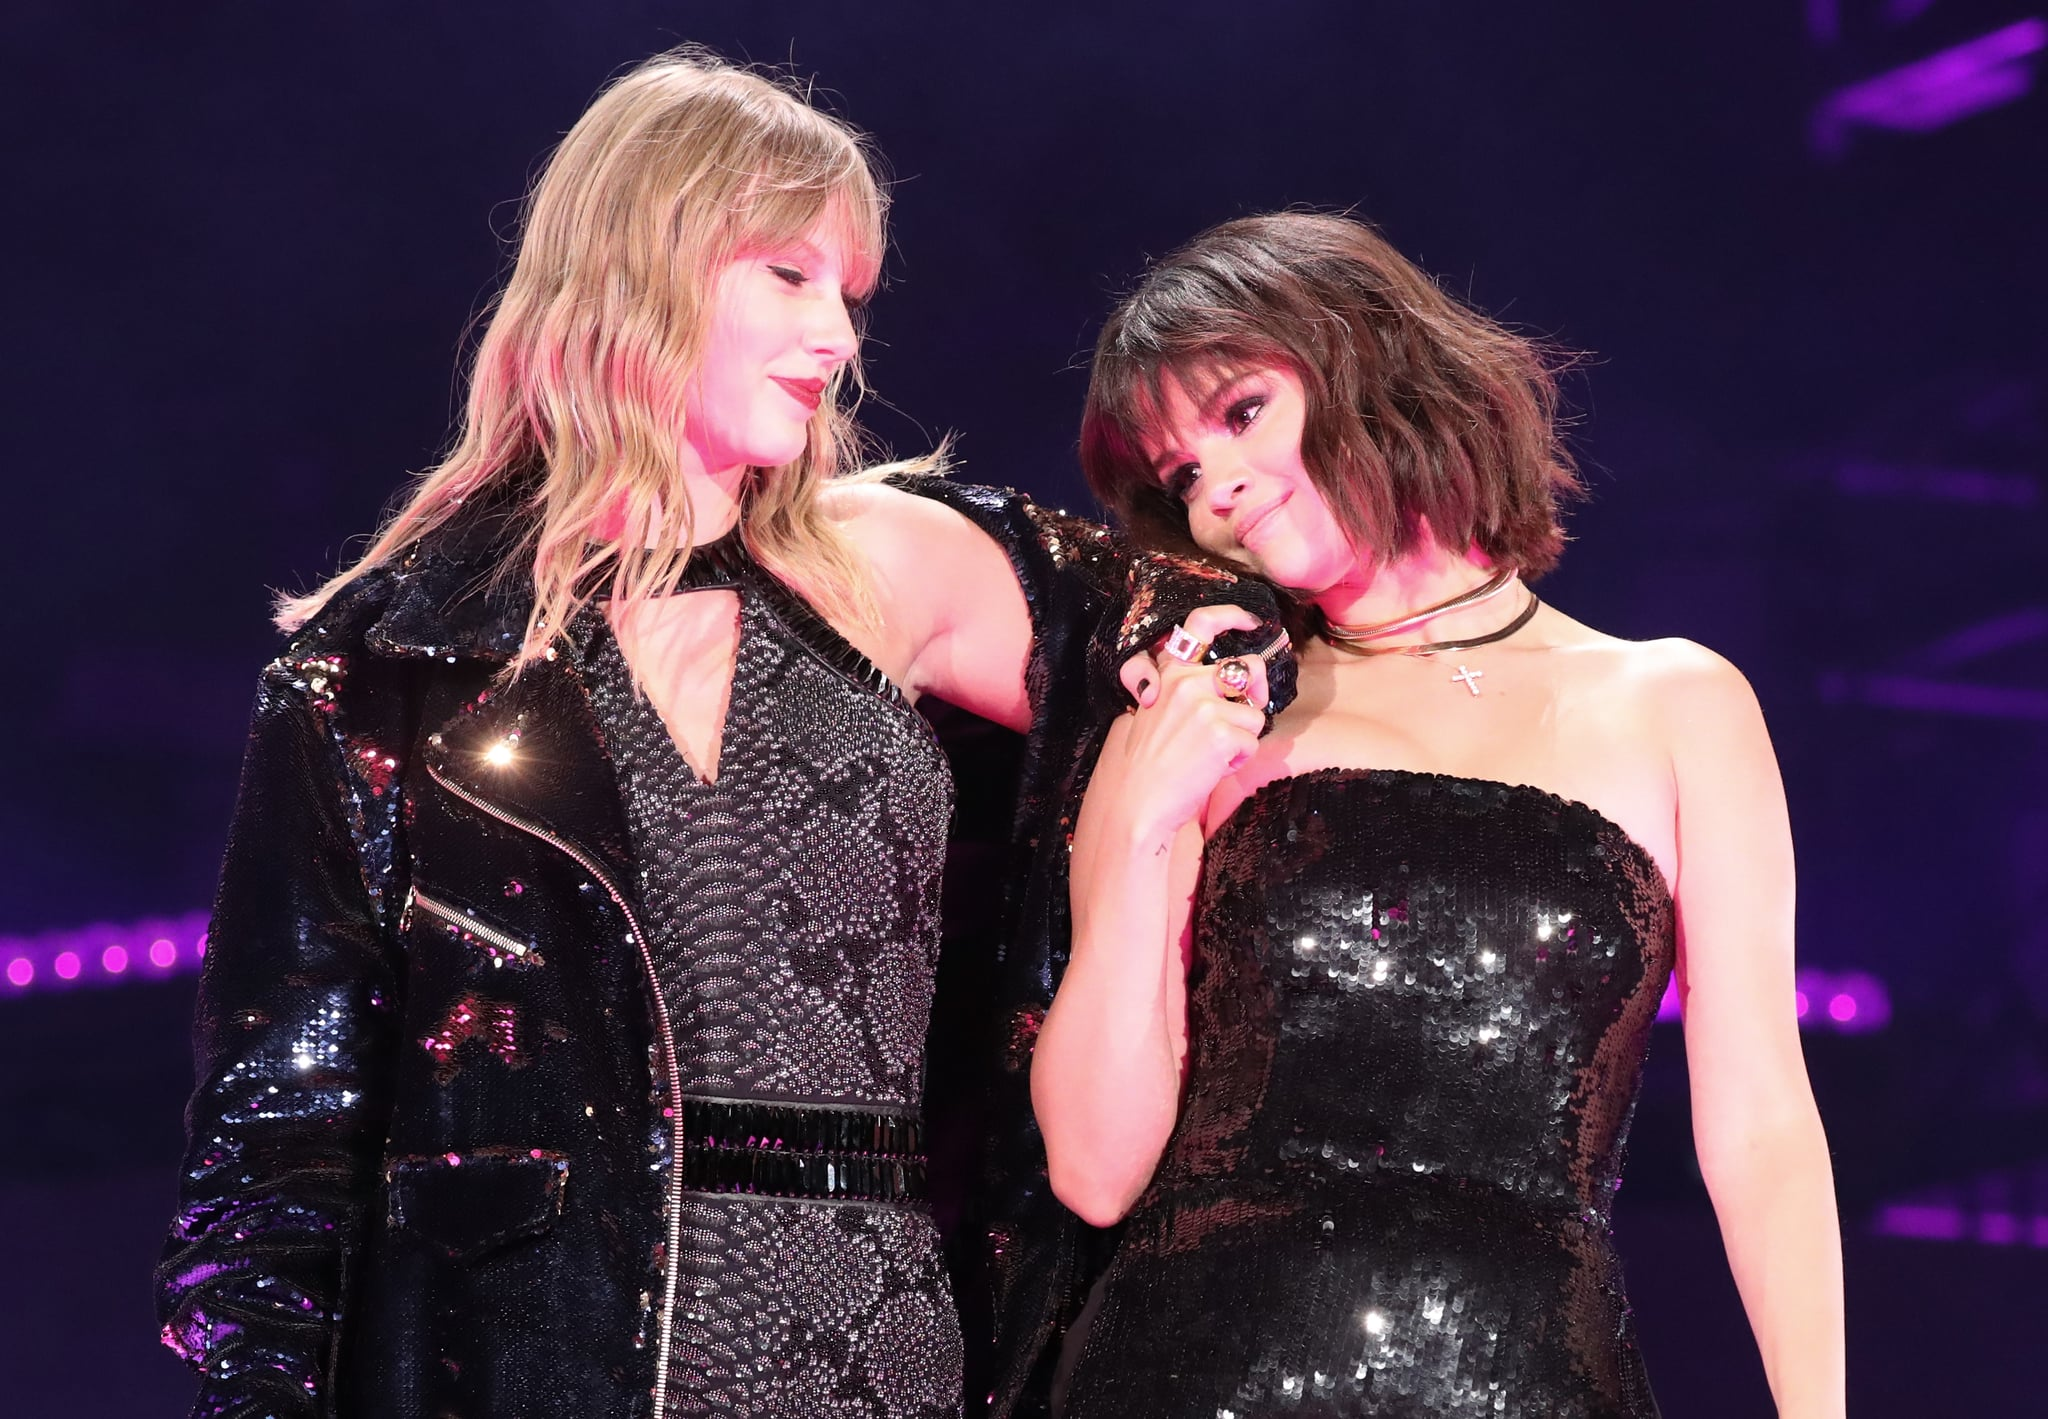 PASADENA, CA - MAY 19:  Taylor Swift and Selena Gomez perform onstage during the Taylor Swift reputation Stadium Tour at the Rose Bowl on May 19, 2018 in Pasadena, California  (Photo by Christopher Polk/TAS18/Getty Images)